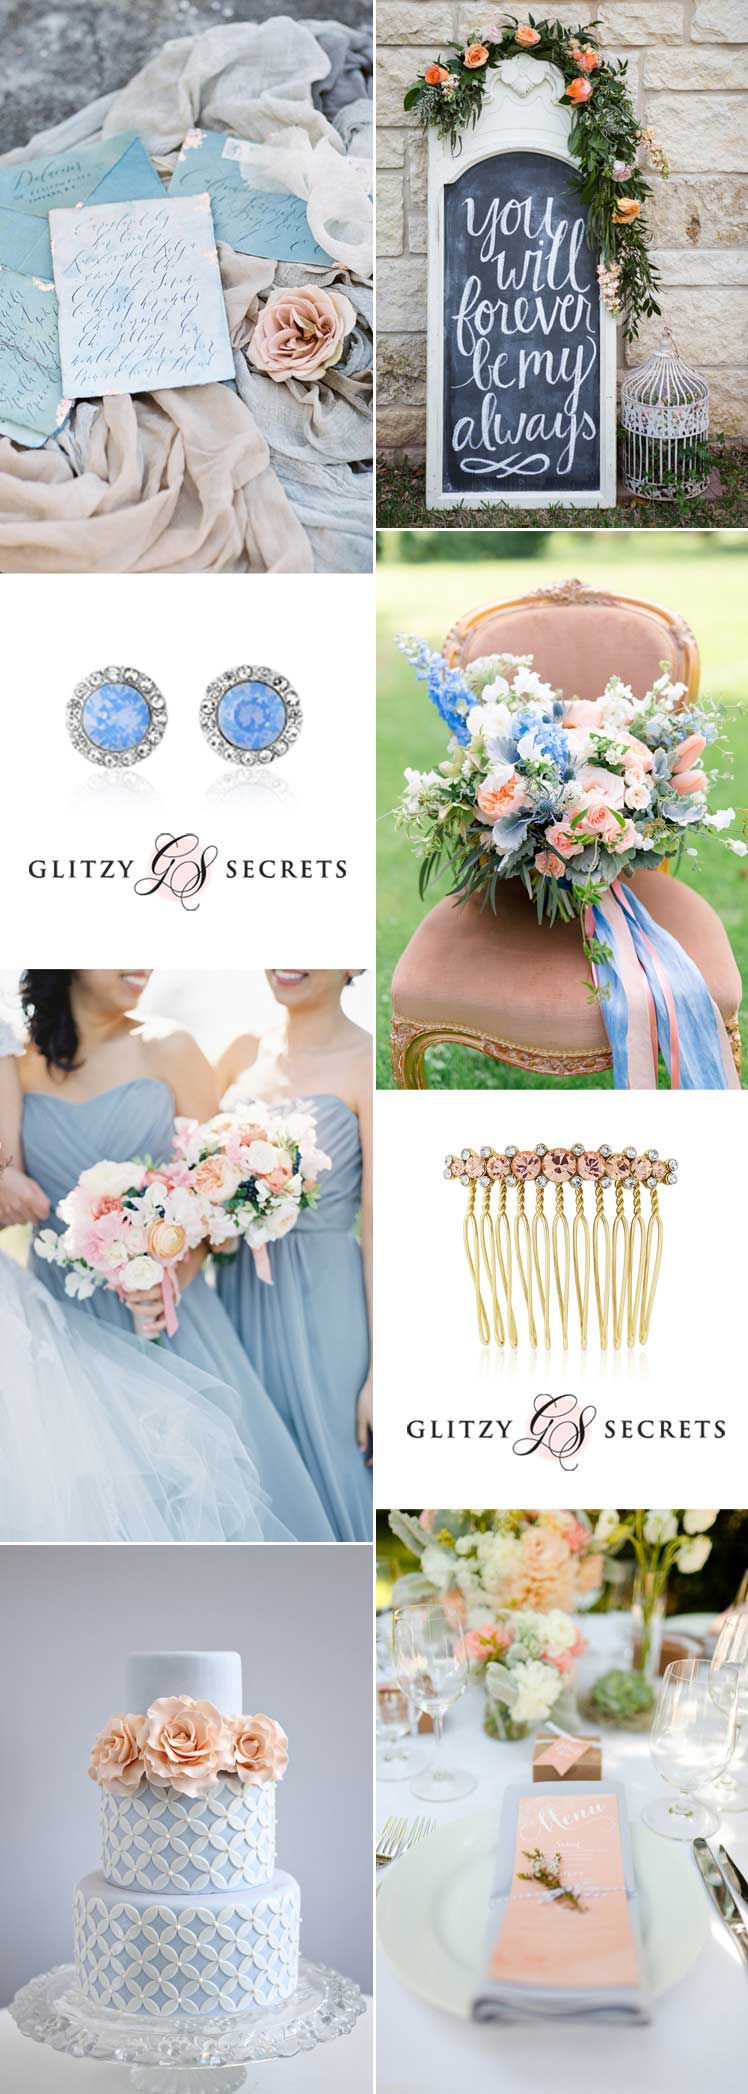 Blue and peach wedding ideas for a stunning day